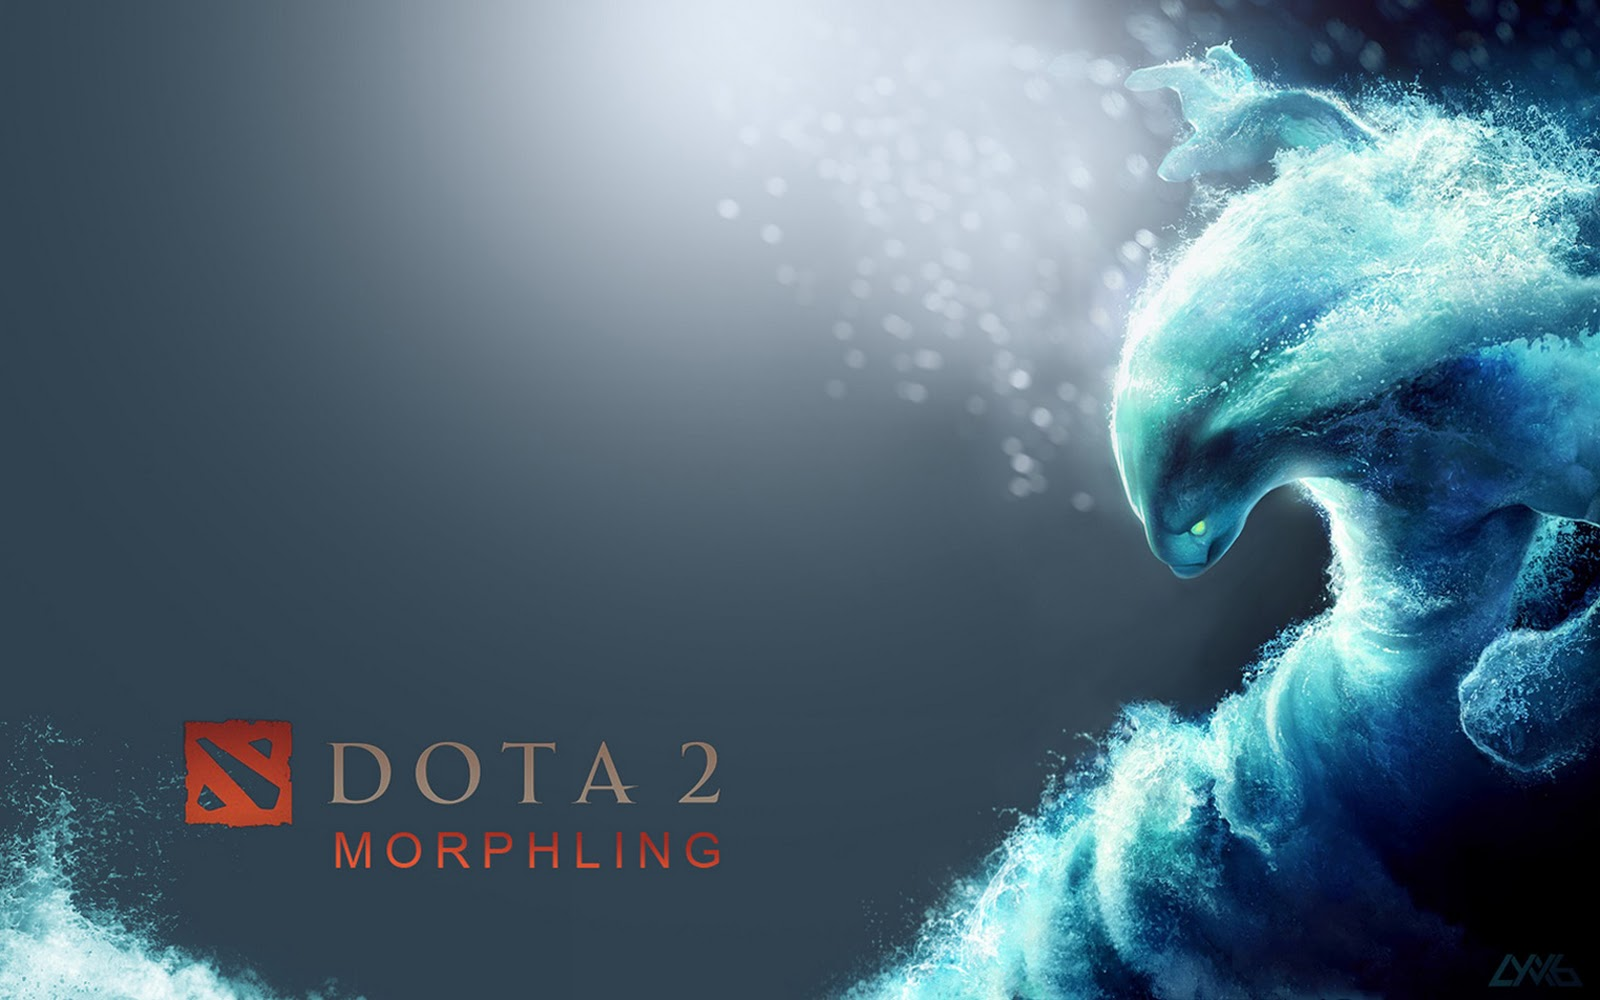 DotA 2 Wallpaper And Background Image 1600x1000 ID389217 Wallpaper Abyss